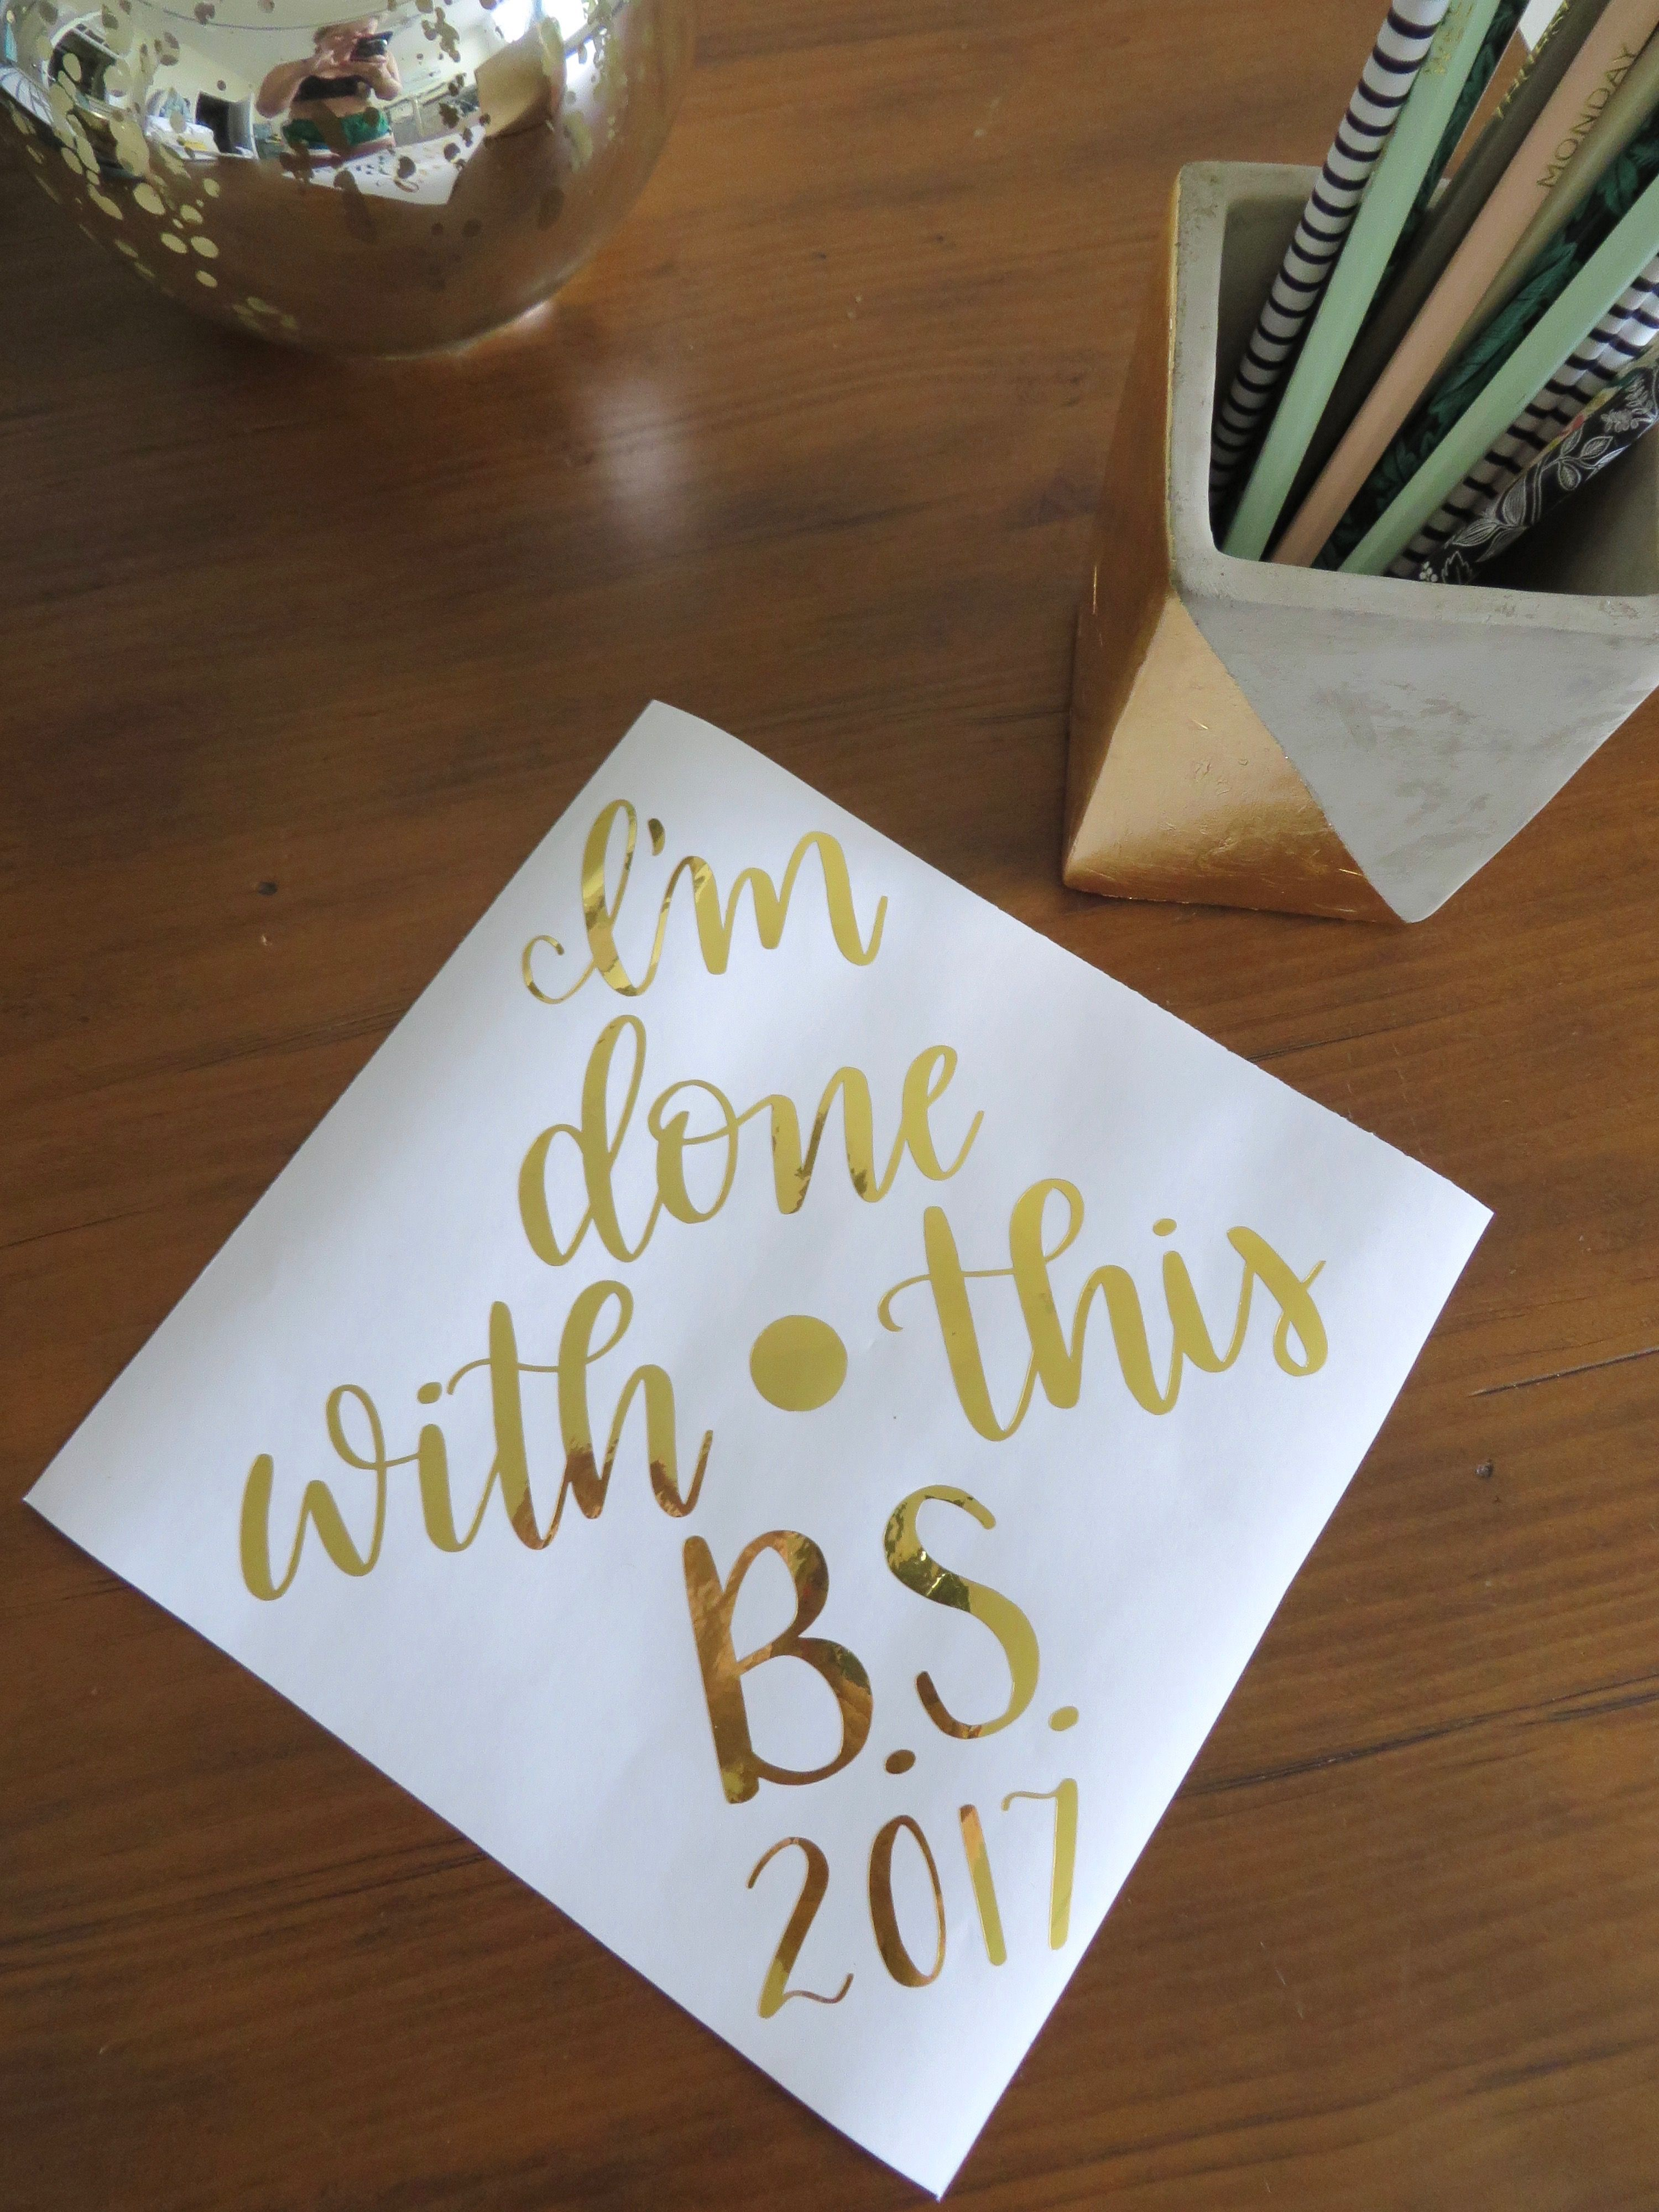 Smartly Degree Done This 2018 Graduation Cap Bachelor Done This 2018 Graduation Cap Decoration Decorated Graduation Caps Ny Decorated Graduation Caps Tumblr